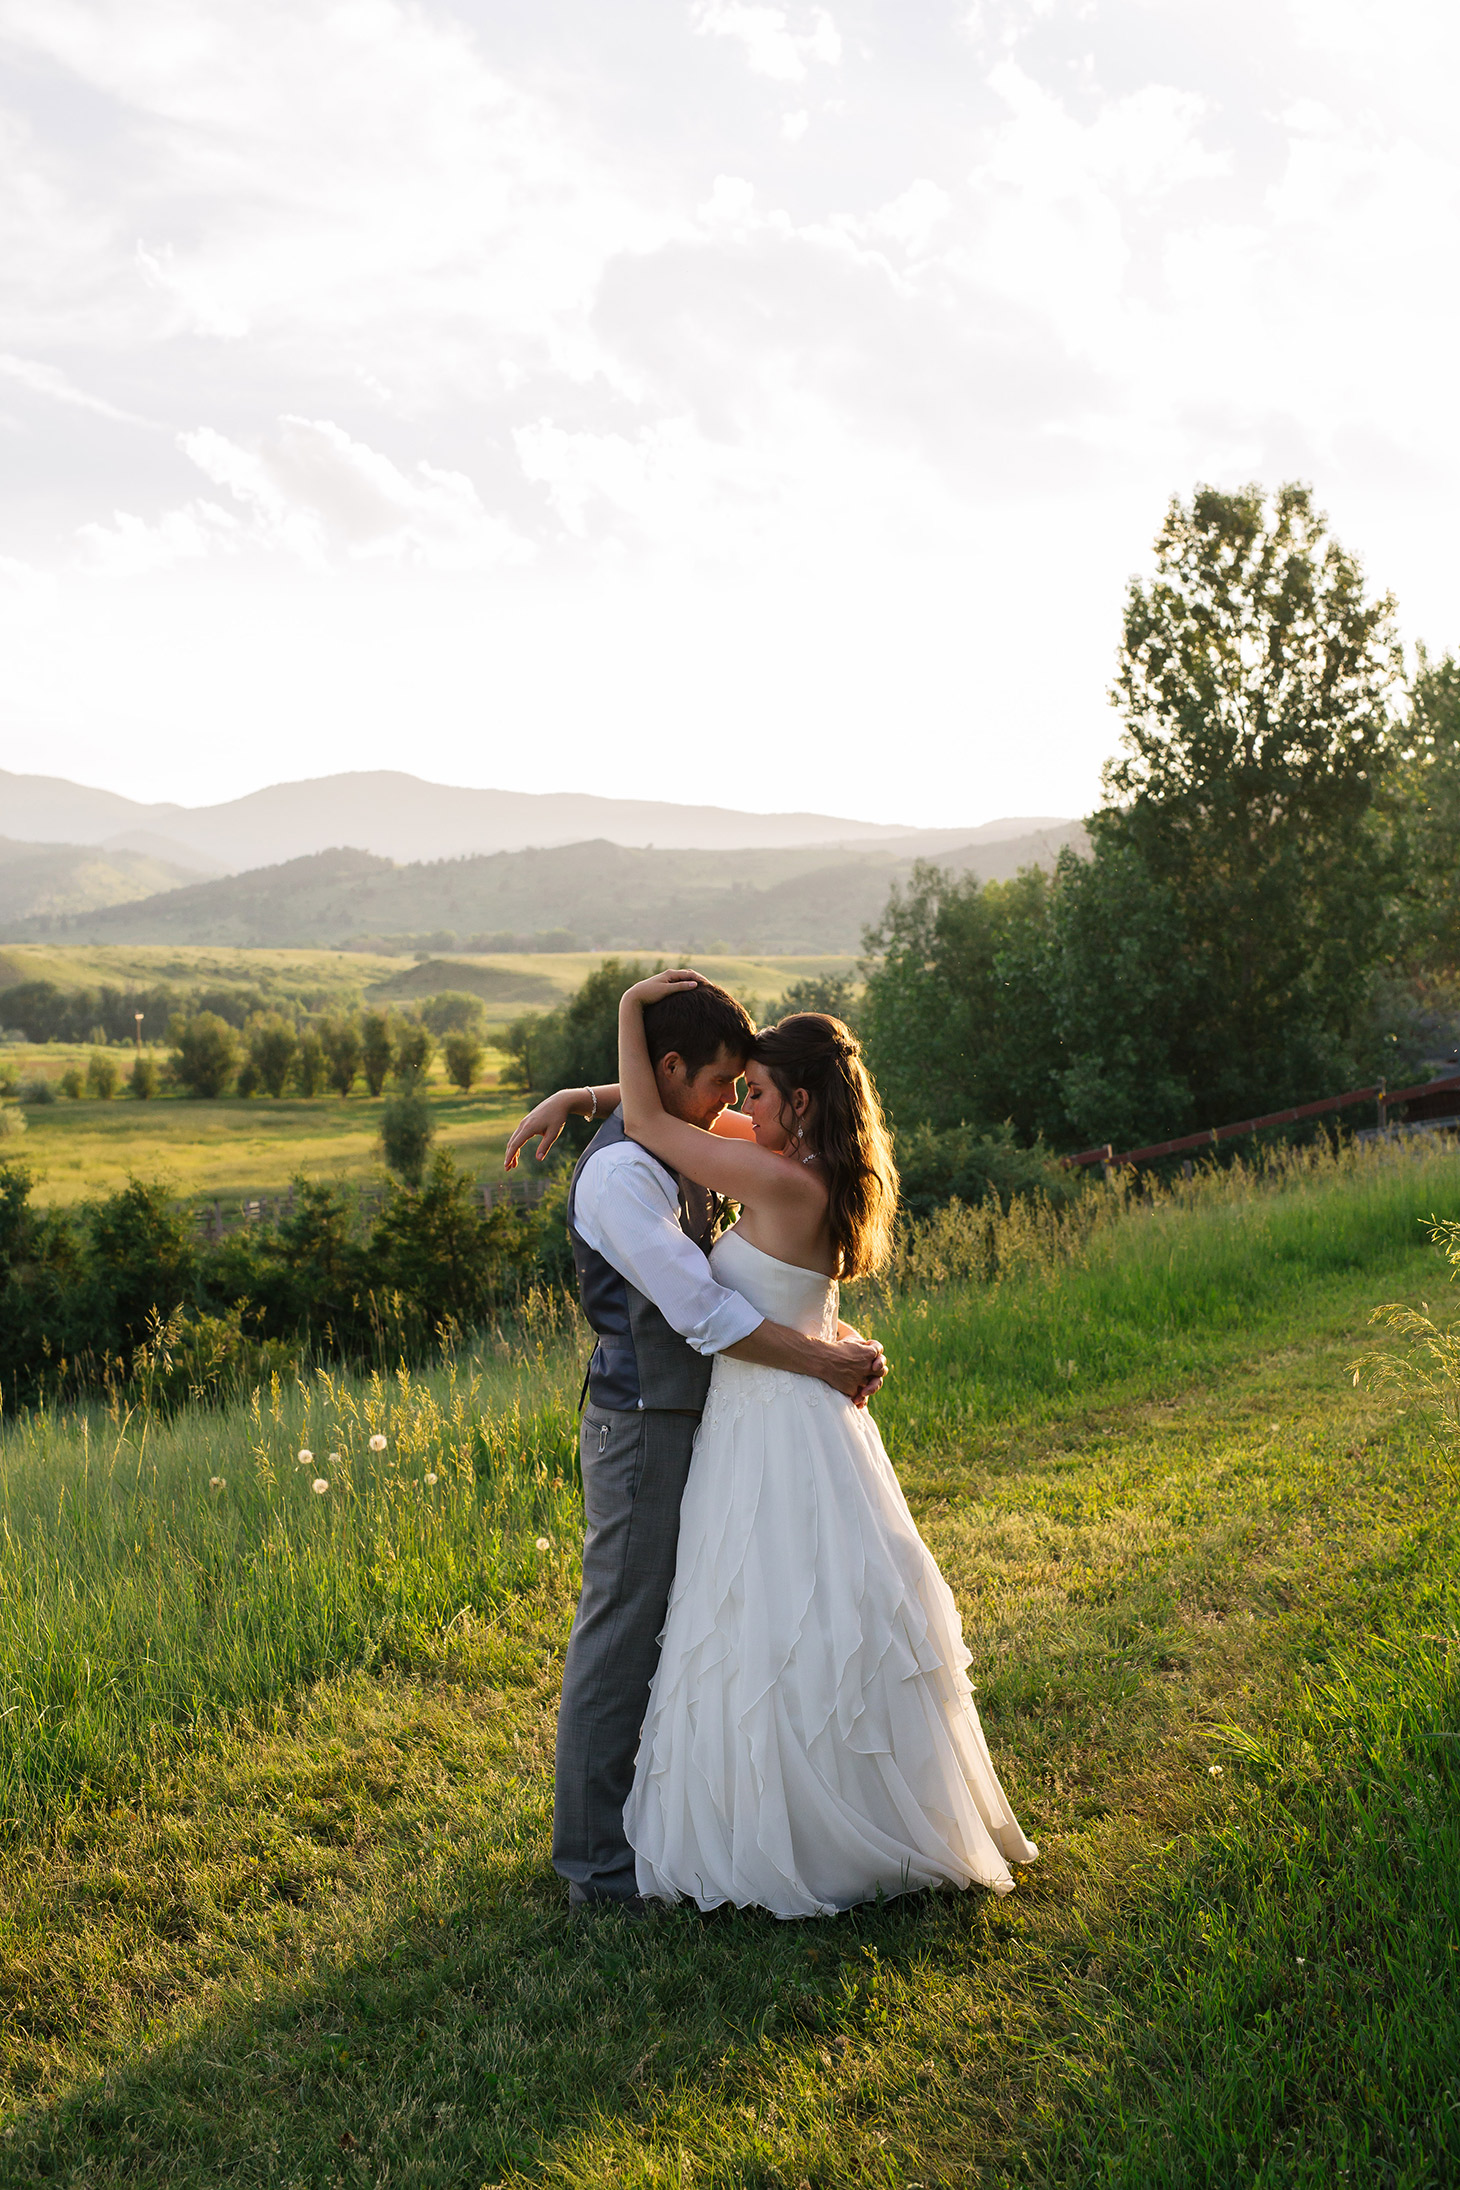 Megan-Newton-Photography-Best-Wedding-Photos-2015-116